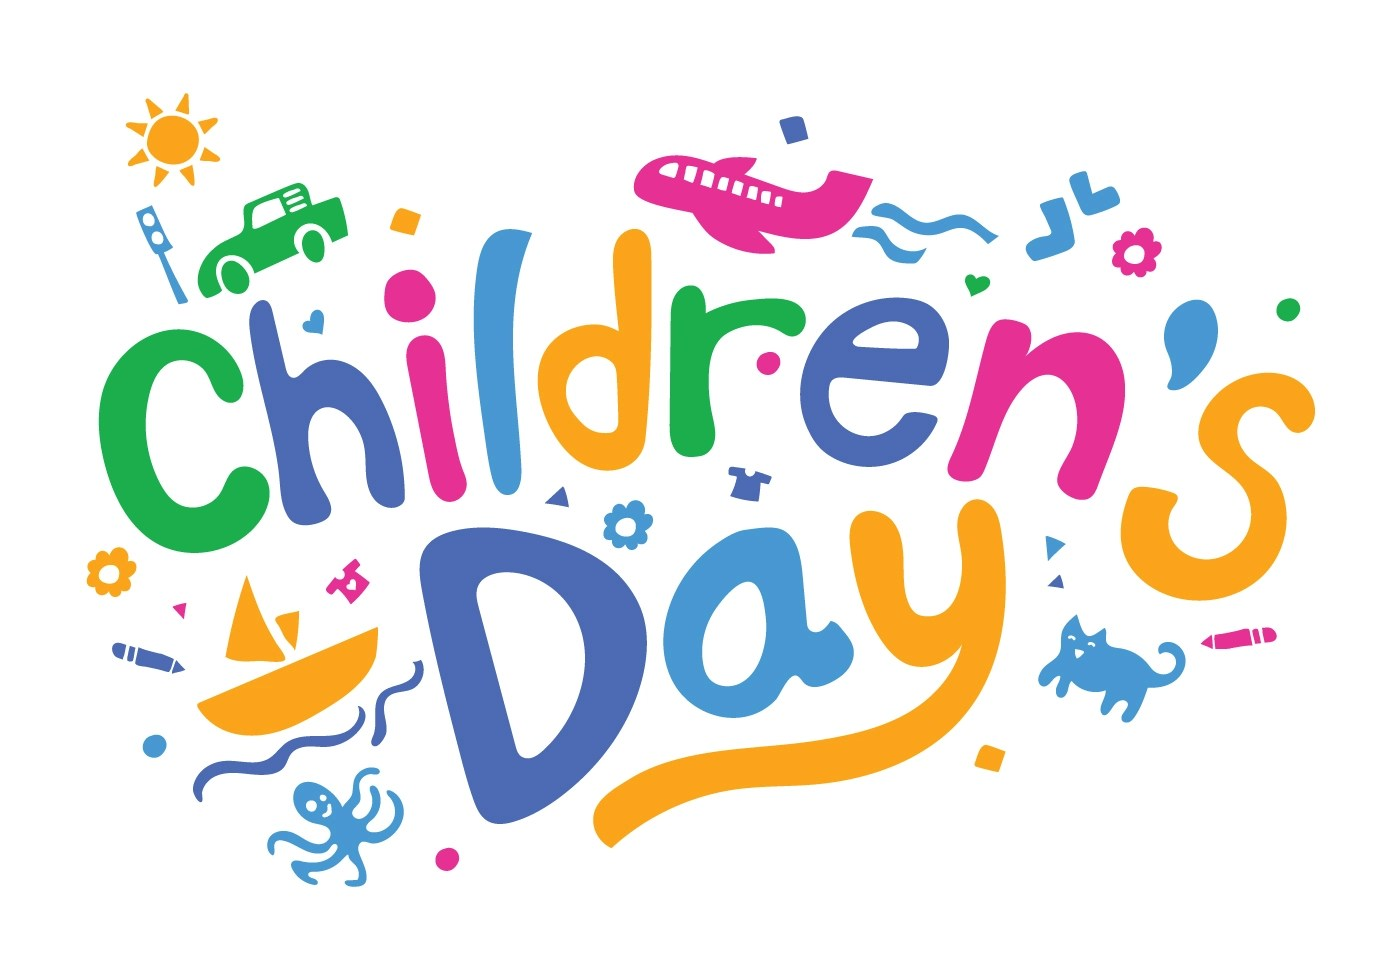 Fun Childrens Day Vector Illustration